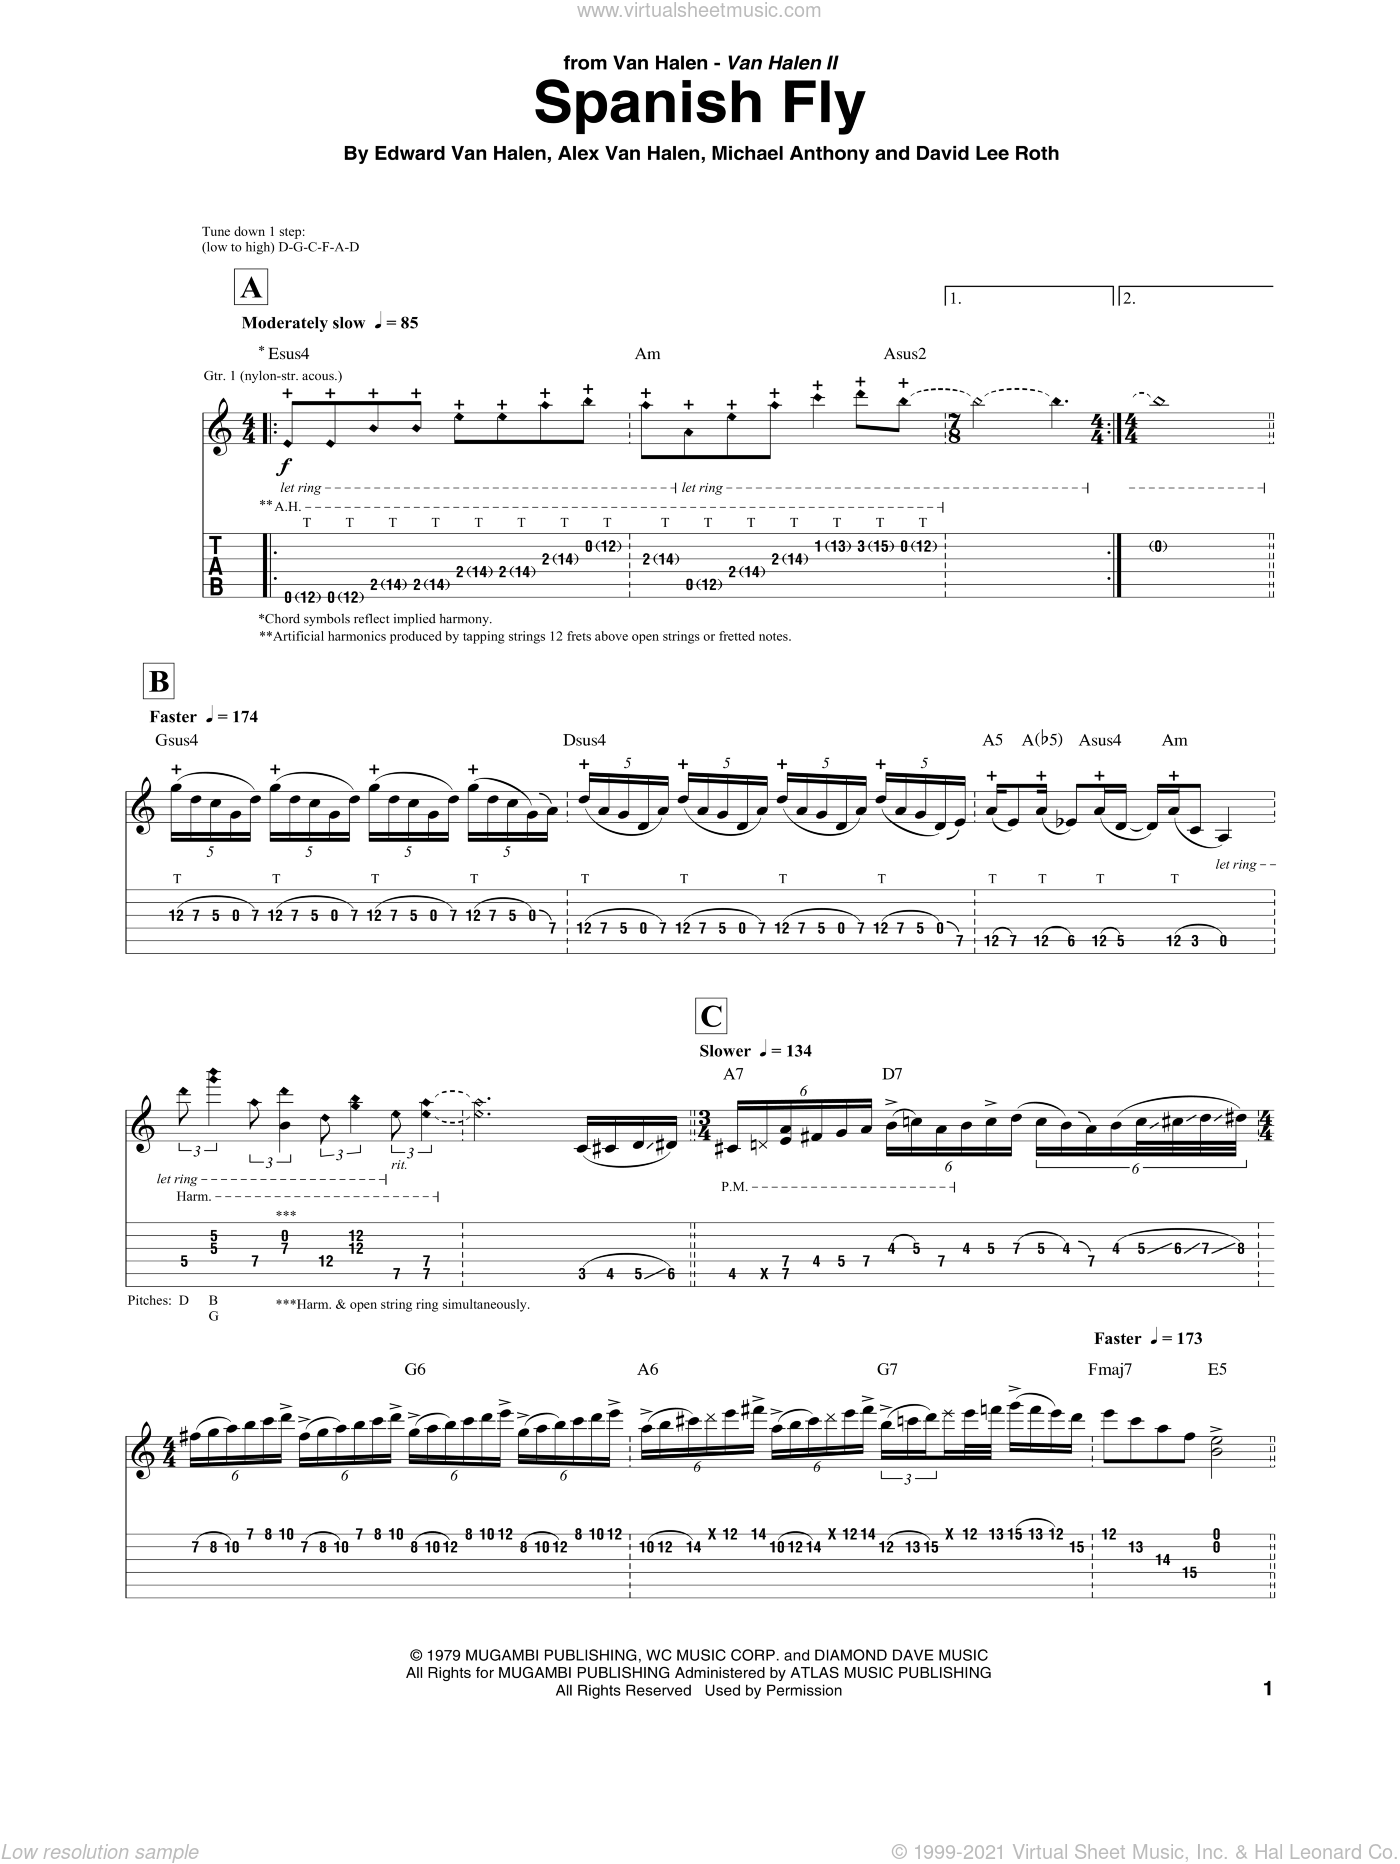 Spanish Fly sheet music for guitar (tablature) by Edward Van Halen, Alex Van Halen, David Lee Roth and Michael Anthony, intermediate